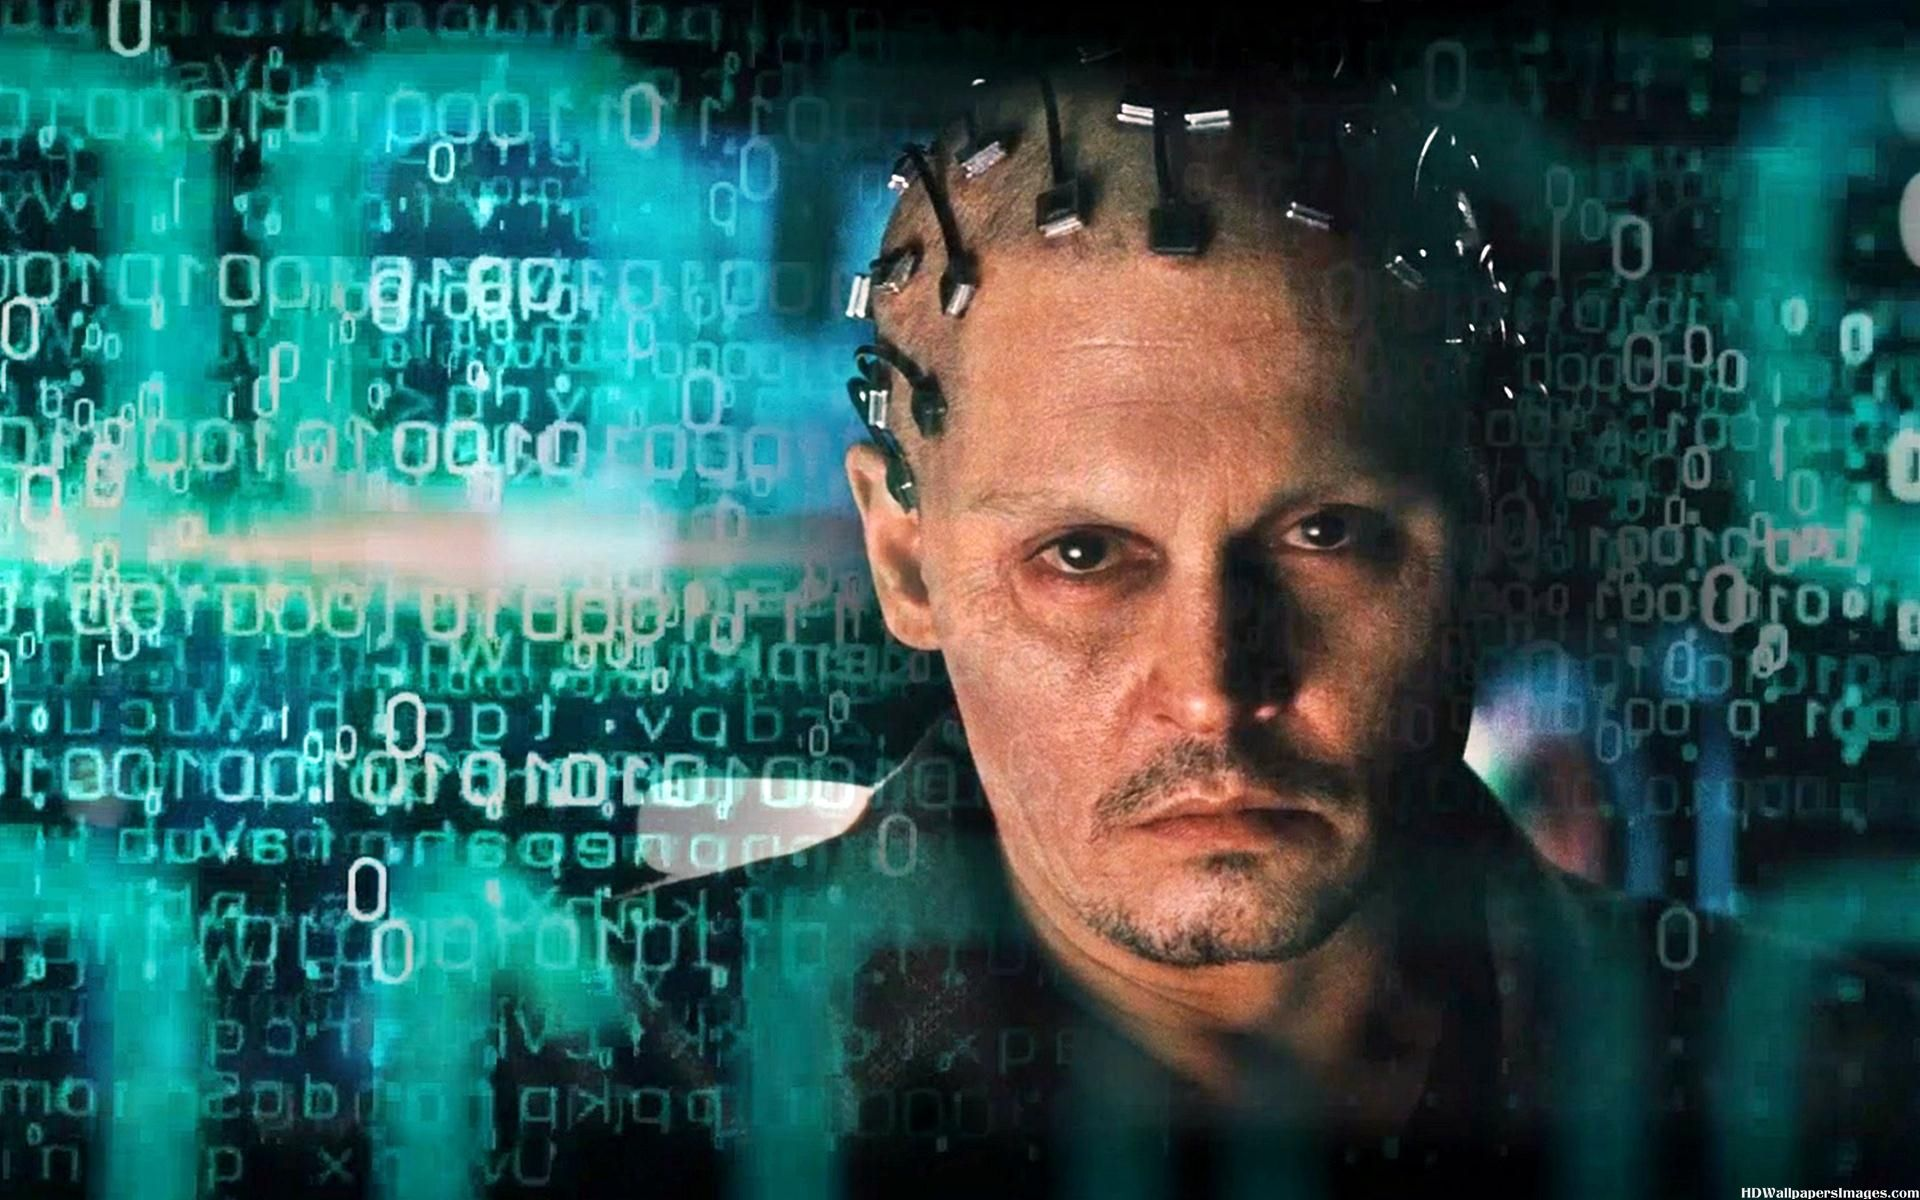 True AI, or clever simulation? Transcendence movie has Johnny Depp ...